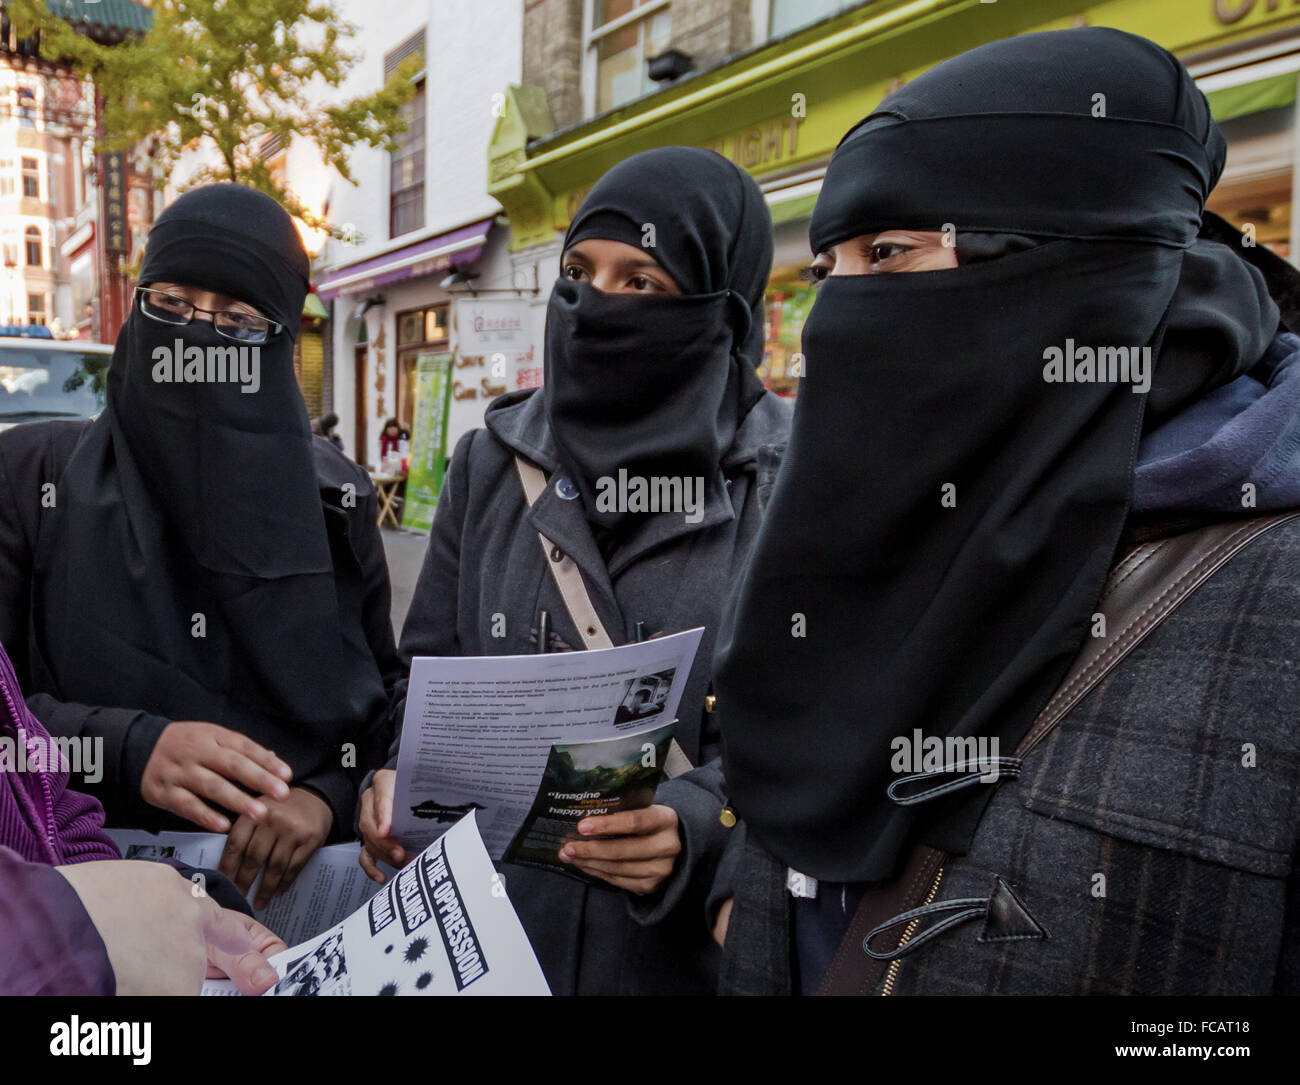 London, UK. 21st January, 2016. File Images: PM David Cameron backs bans on Muslim face veils as Tories plan crackdown - Stock Image